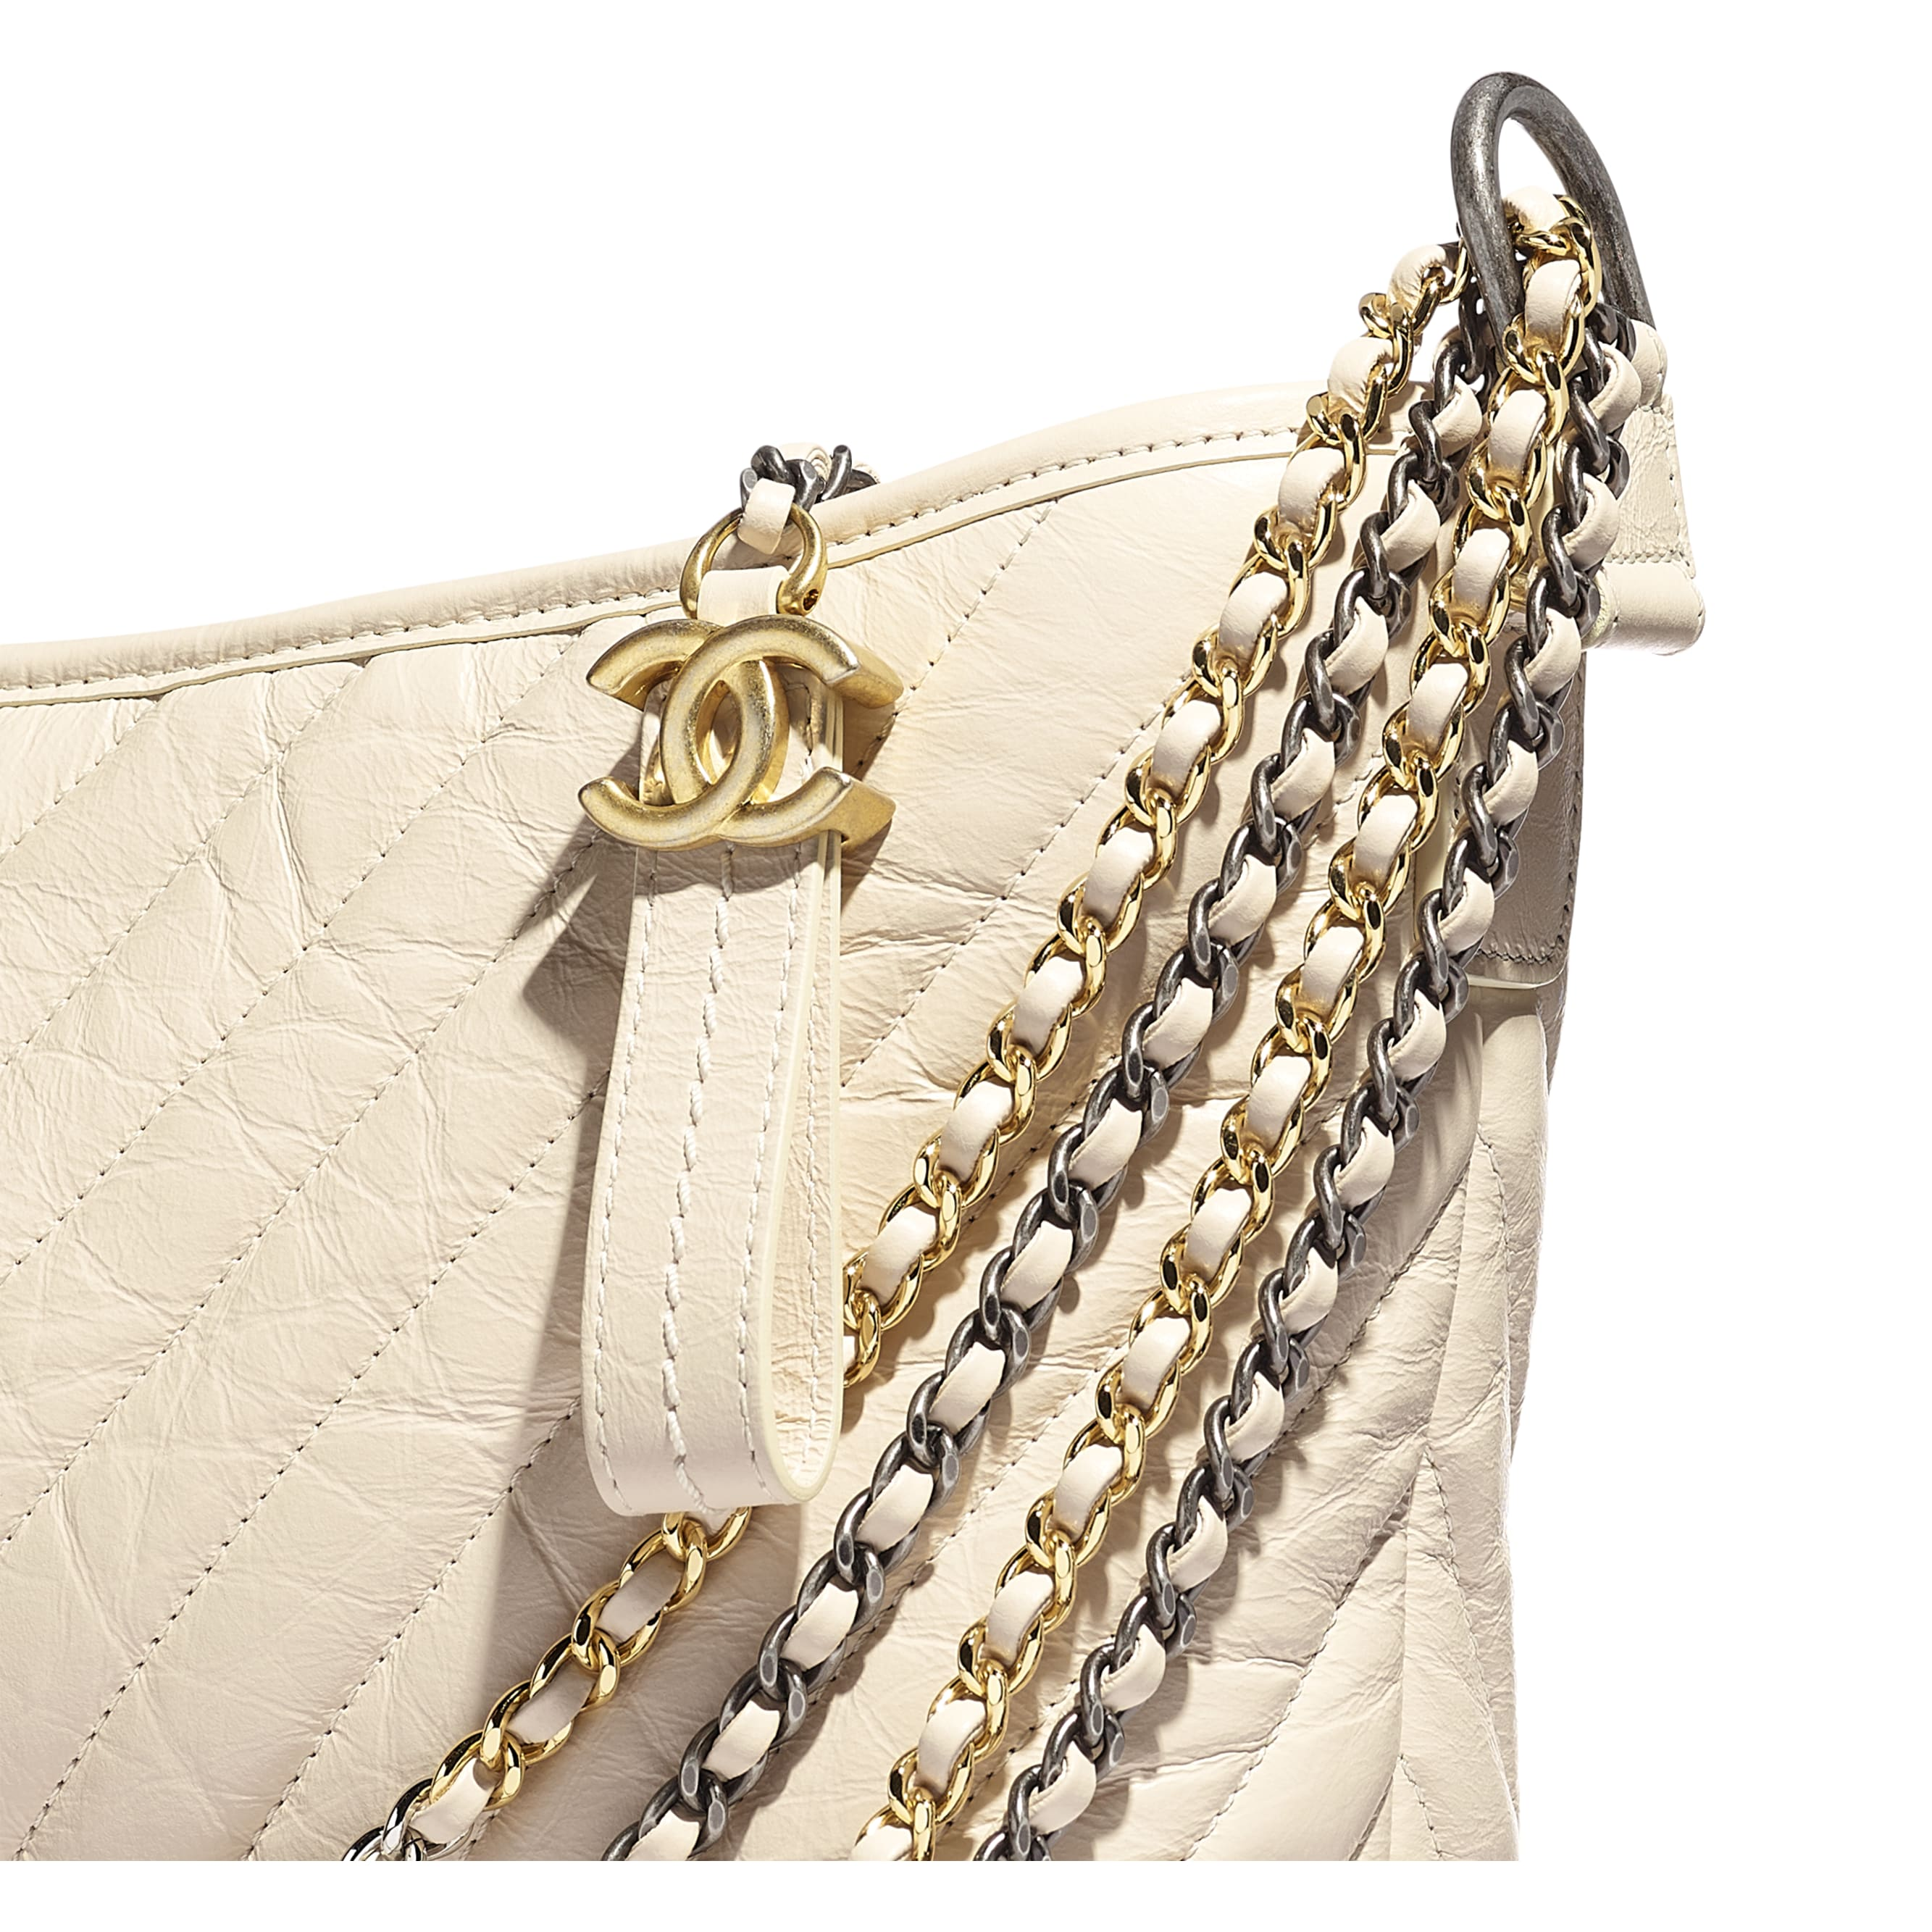 CHANEL'S GABRIELLE Large Hobo Bag - Light Beige - Aged Calfskin, Smooth Calfskin, Gold-Tone & Silver-Tone Metal - CHANEL - Extra view - see standard sized version